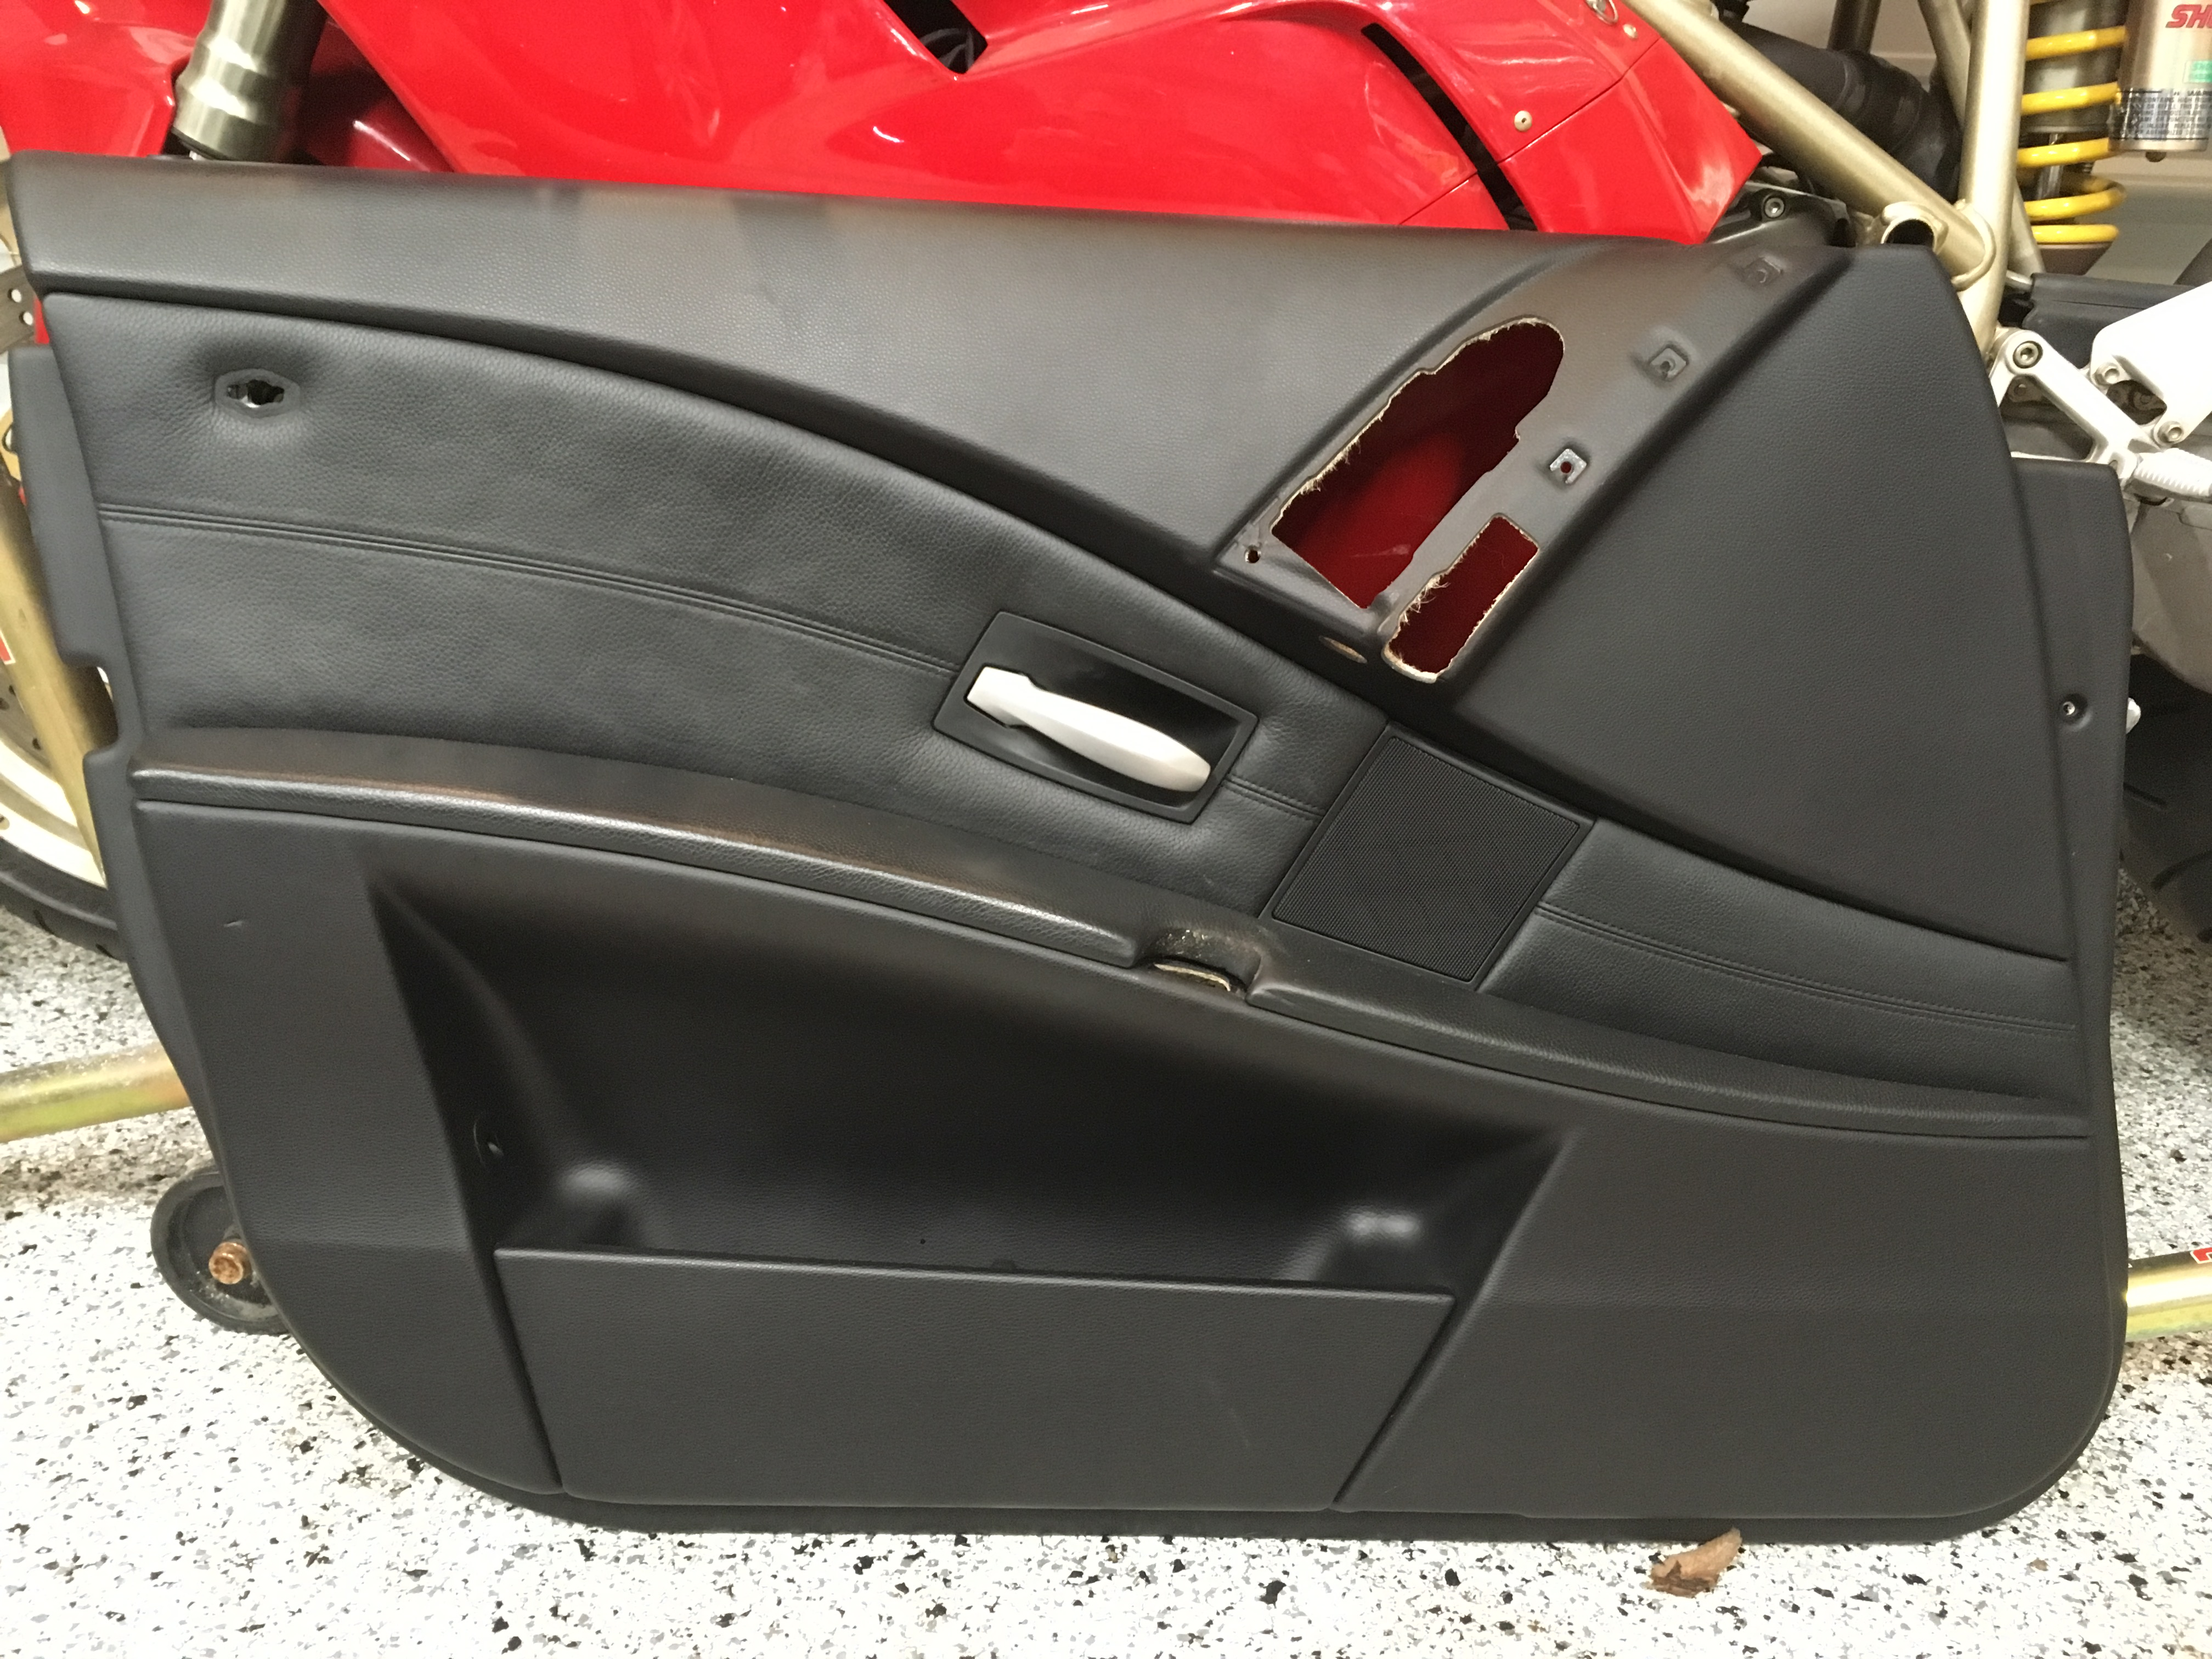 Black M5 door panels with the shade option-2017-01-21-17.16.25.jpg